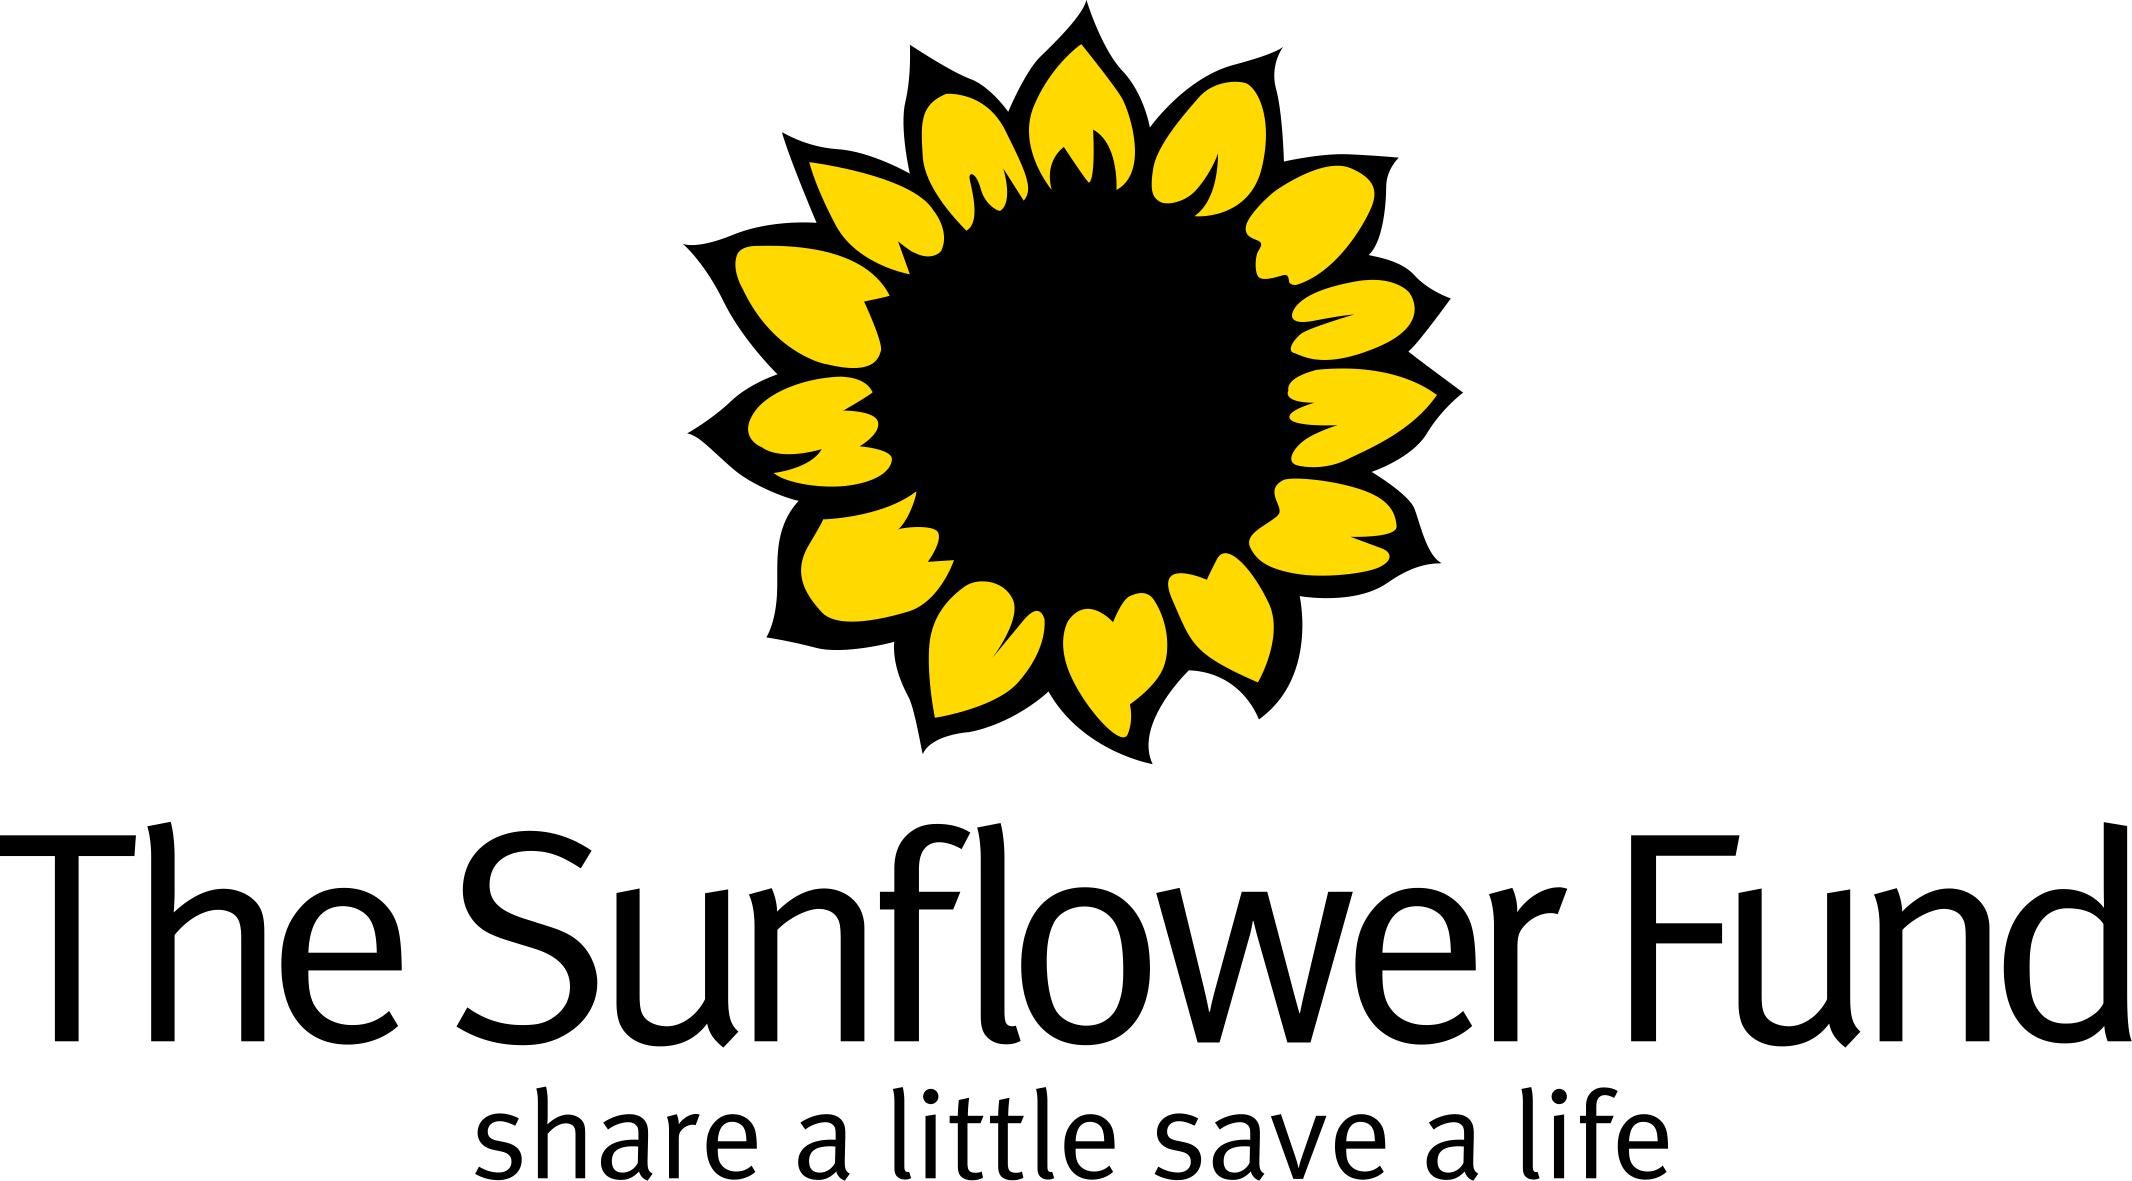 The Sunflower Fund Thumb Image